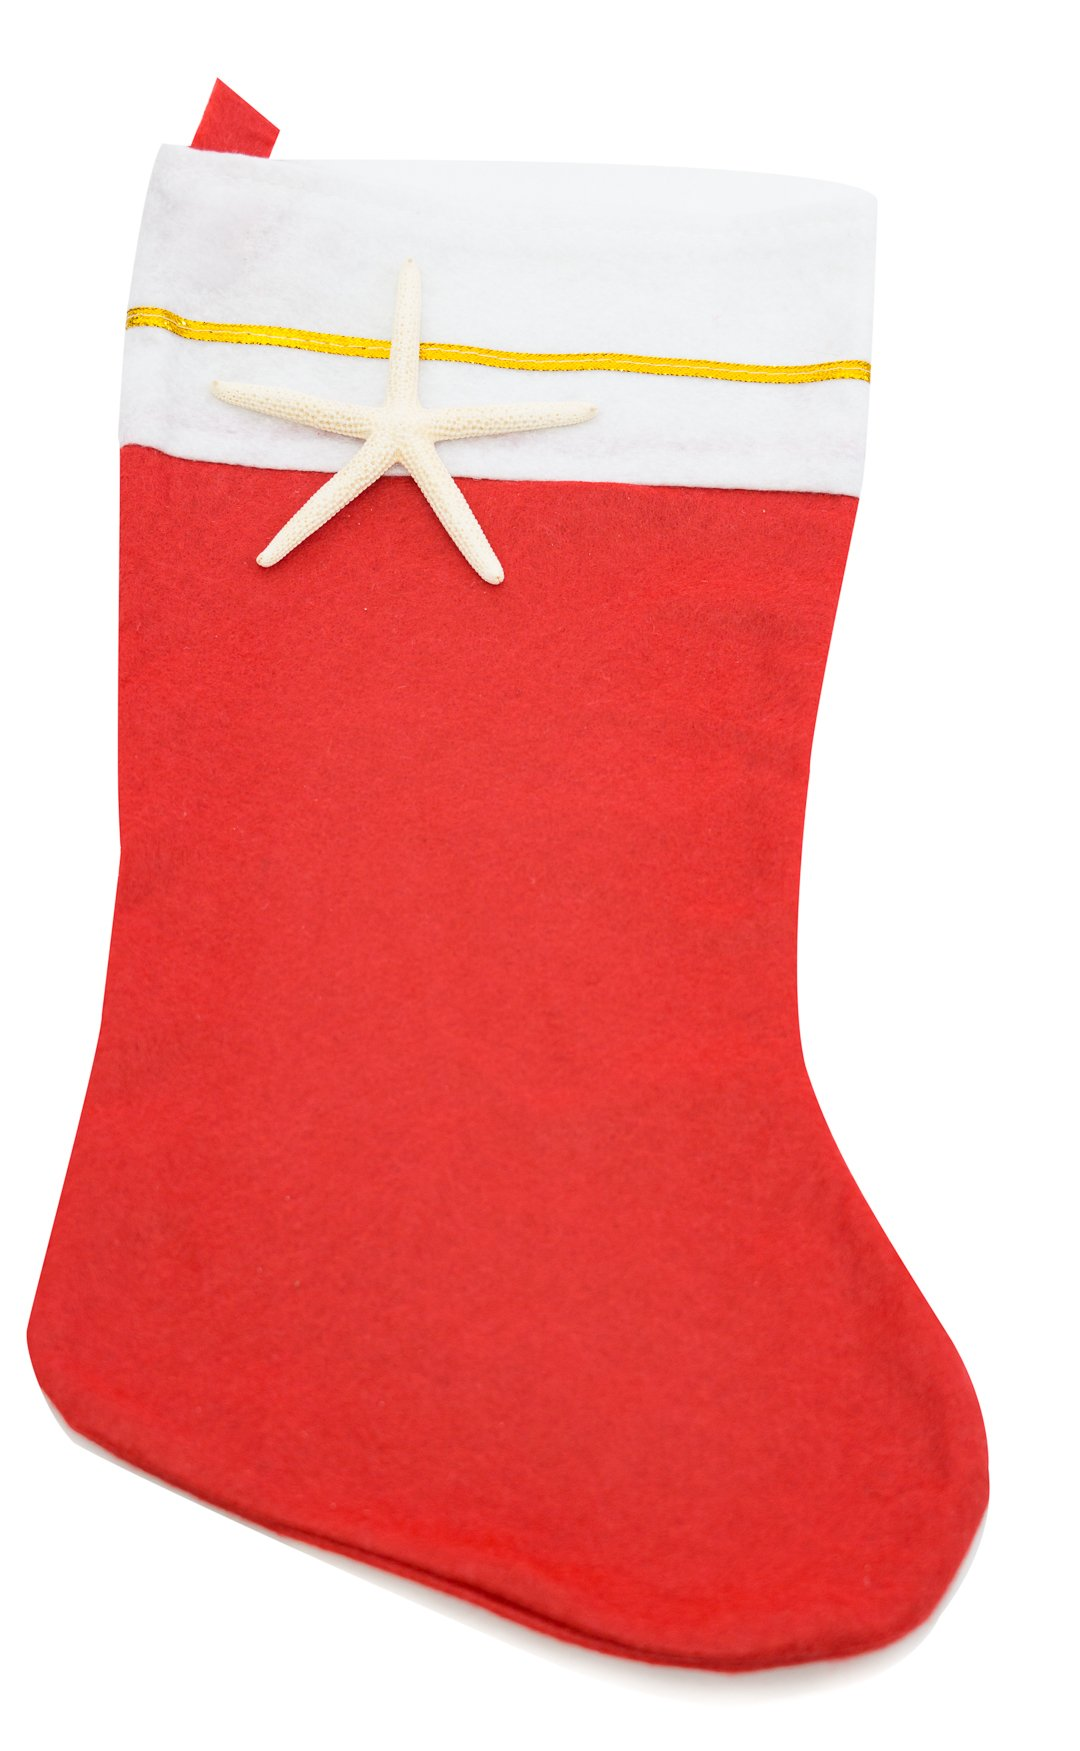 Red Felt Christmas Holiday Stockings | Nautical 16'' Stocking Kit (4 Pack) I Customize your Stocking DIY | Nautical Crush Trading